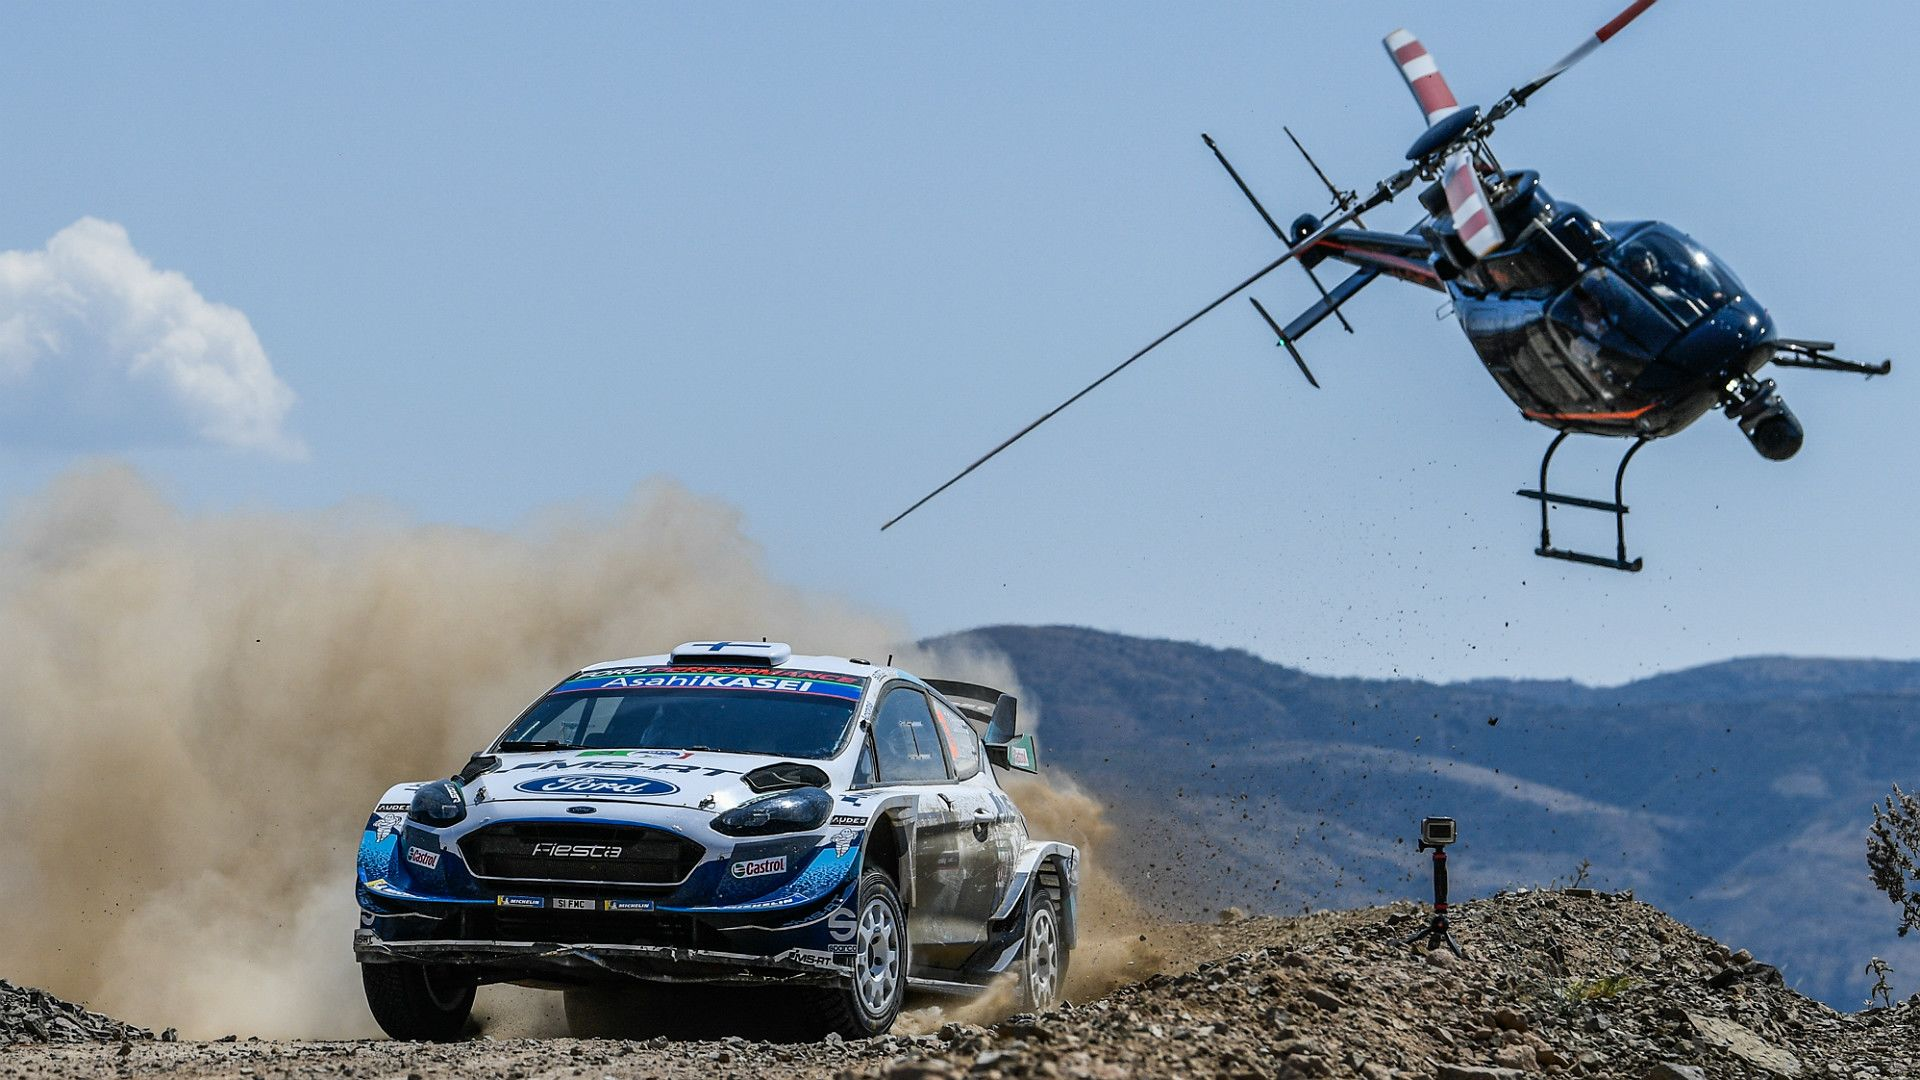 WRC TV audience leaps in 2020 opening quarter